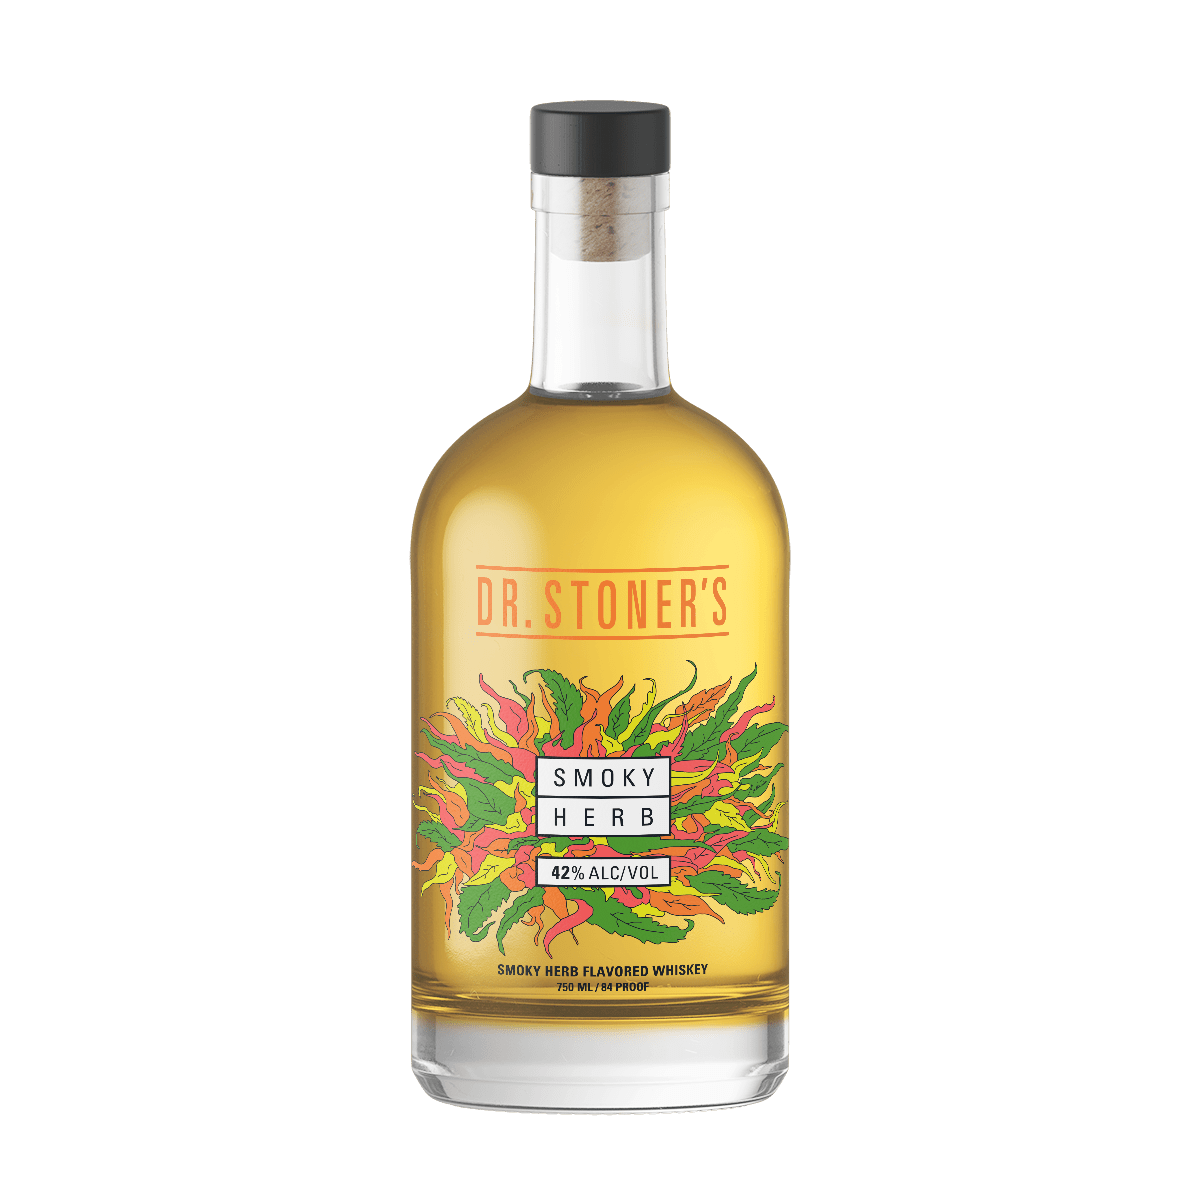 Dr. Stoner's Smoky Herb Flavored Spirit Whiskey